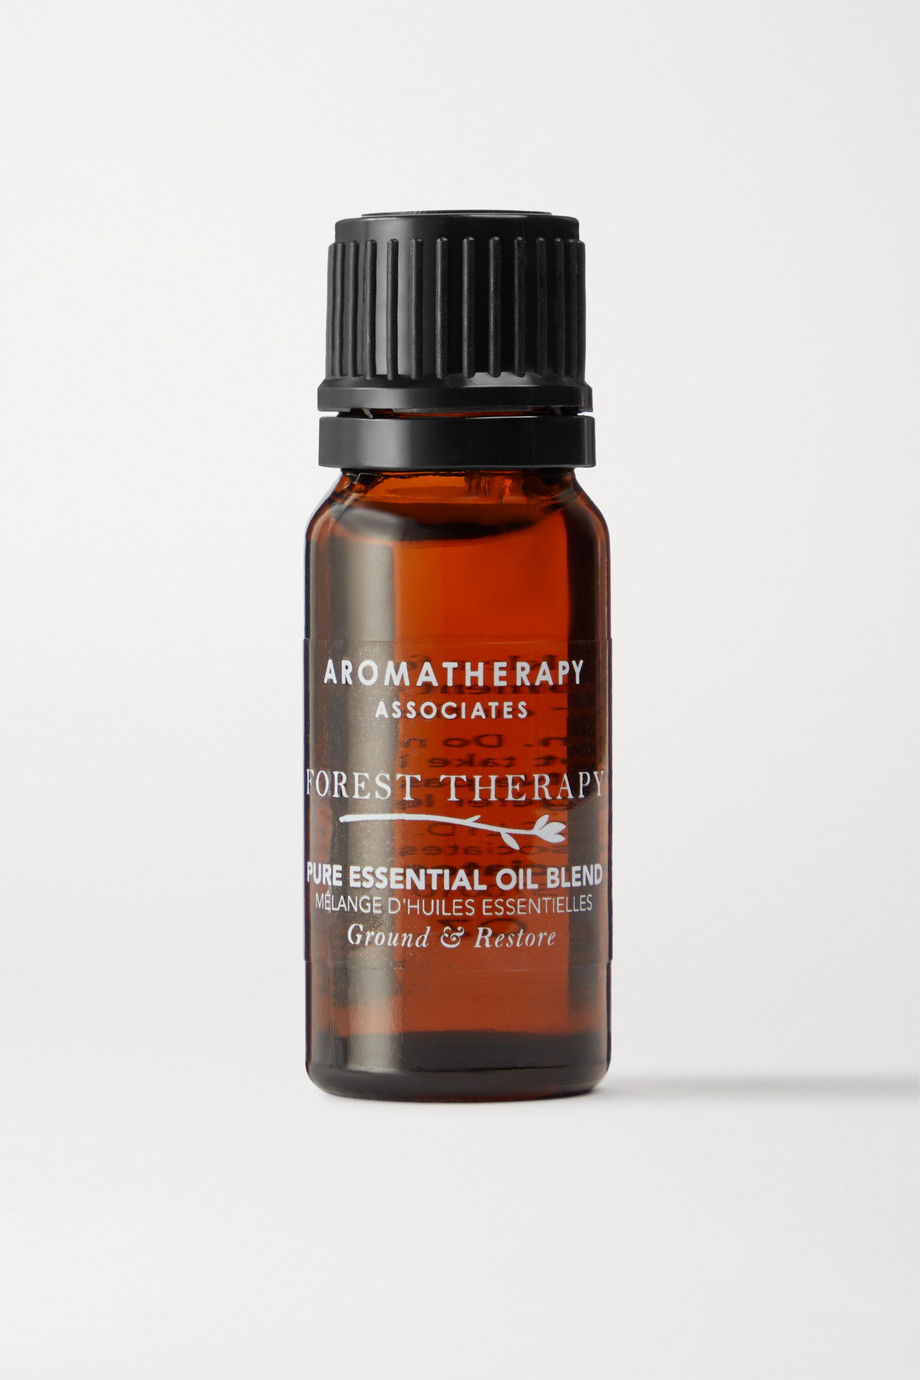 Aromatherapy Associates Forest Therapy Pure Essential Oil Blend, 10ml